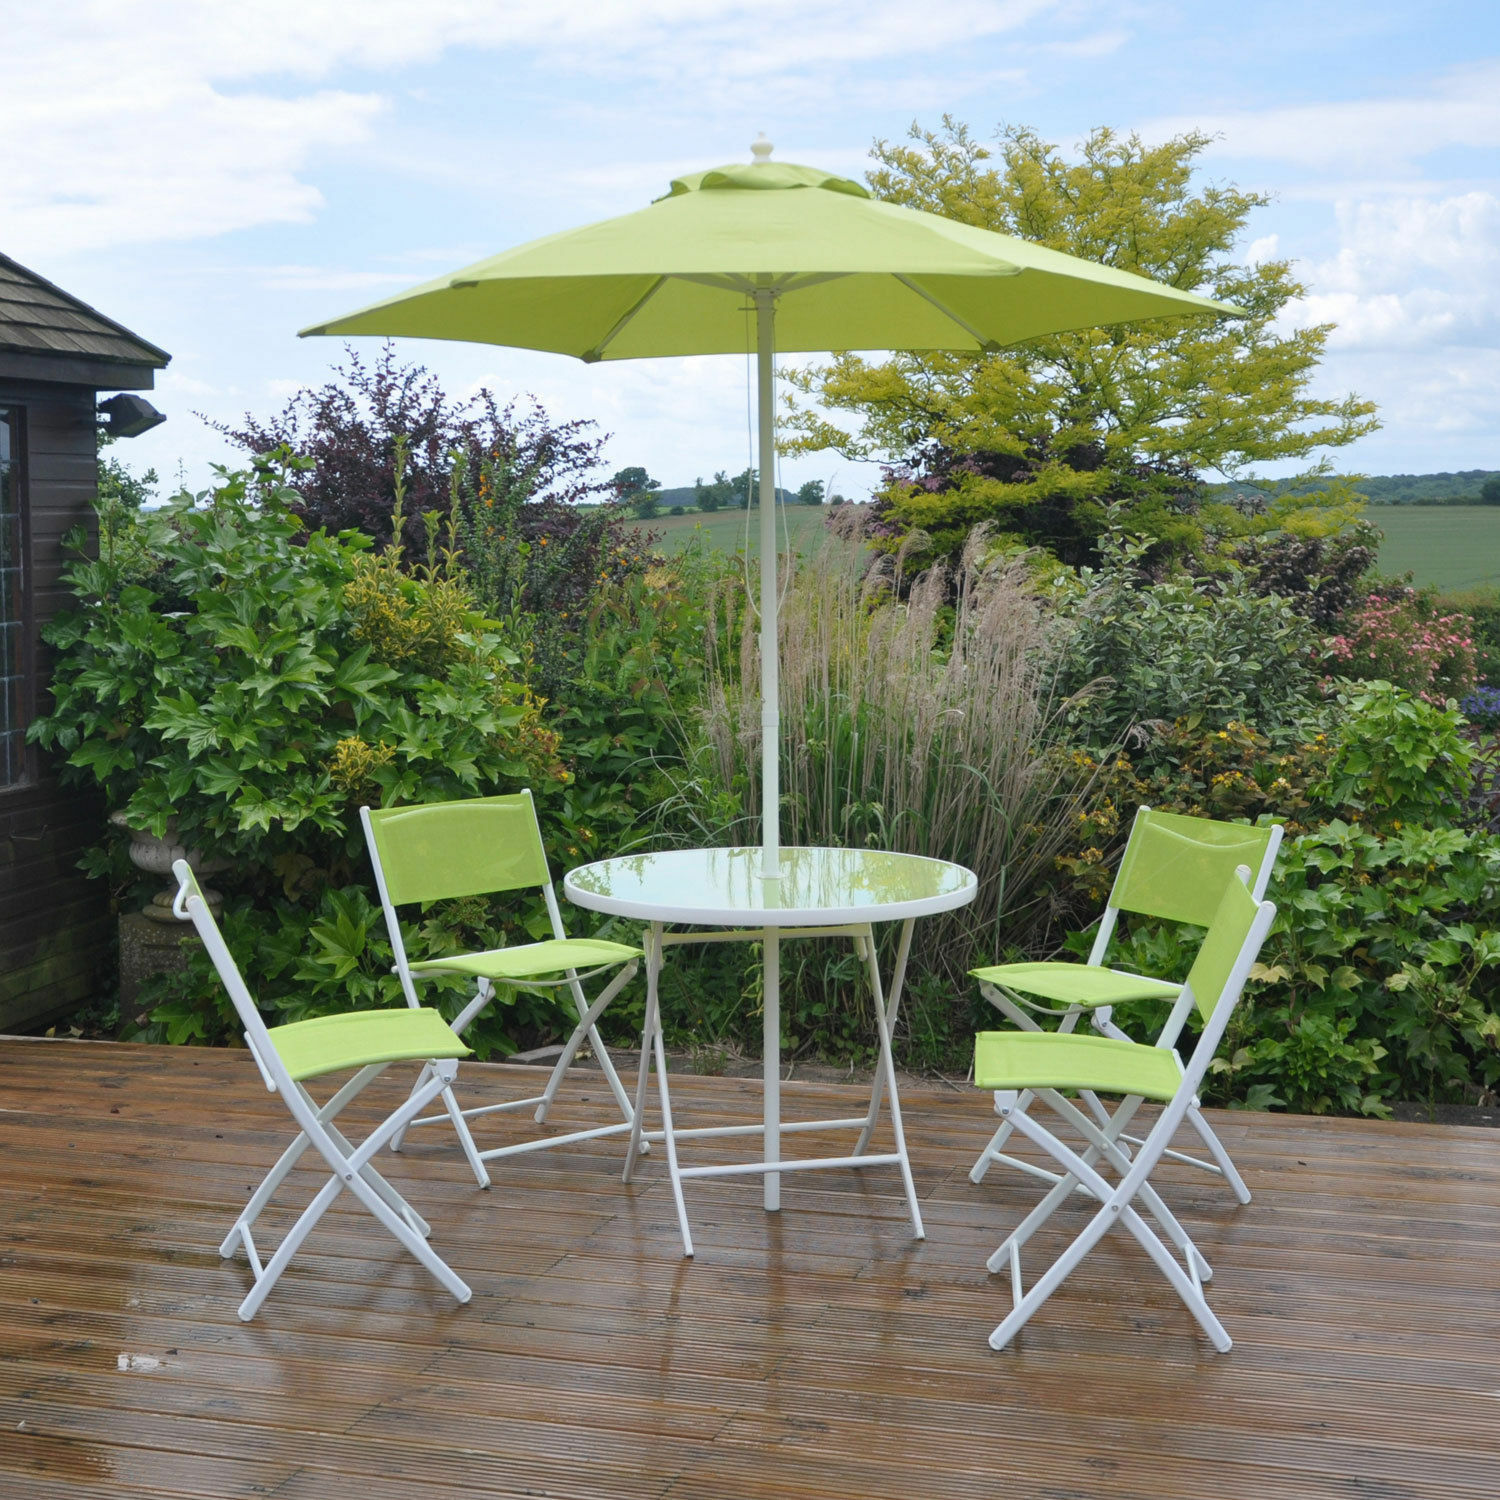 6pc lime green garden patio furniture set dining set